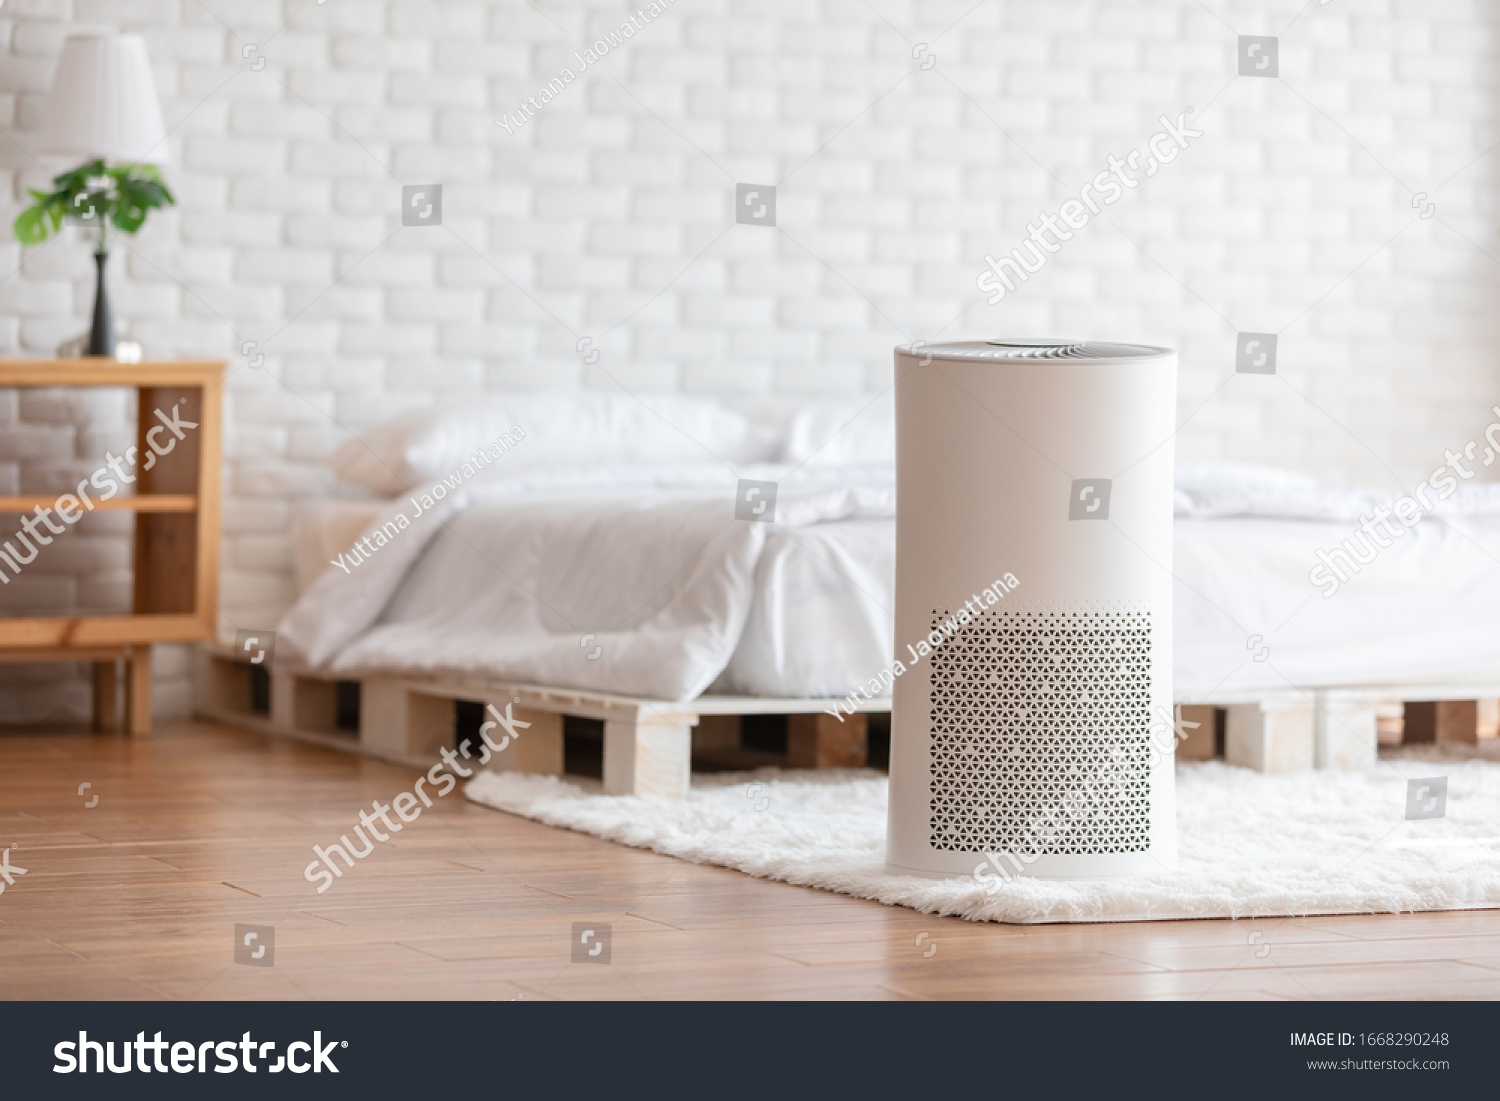 Air purifier in cozy white bedroom for filter and cleaning removing dust PM2.5 HEPA in home,for fresh air and healthy life,Air Pollution Concept #1668290248